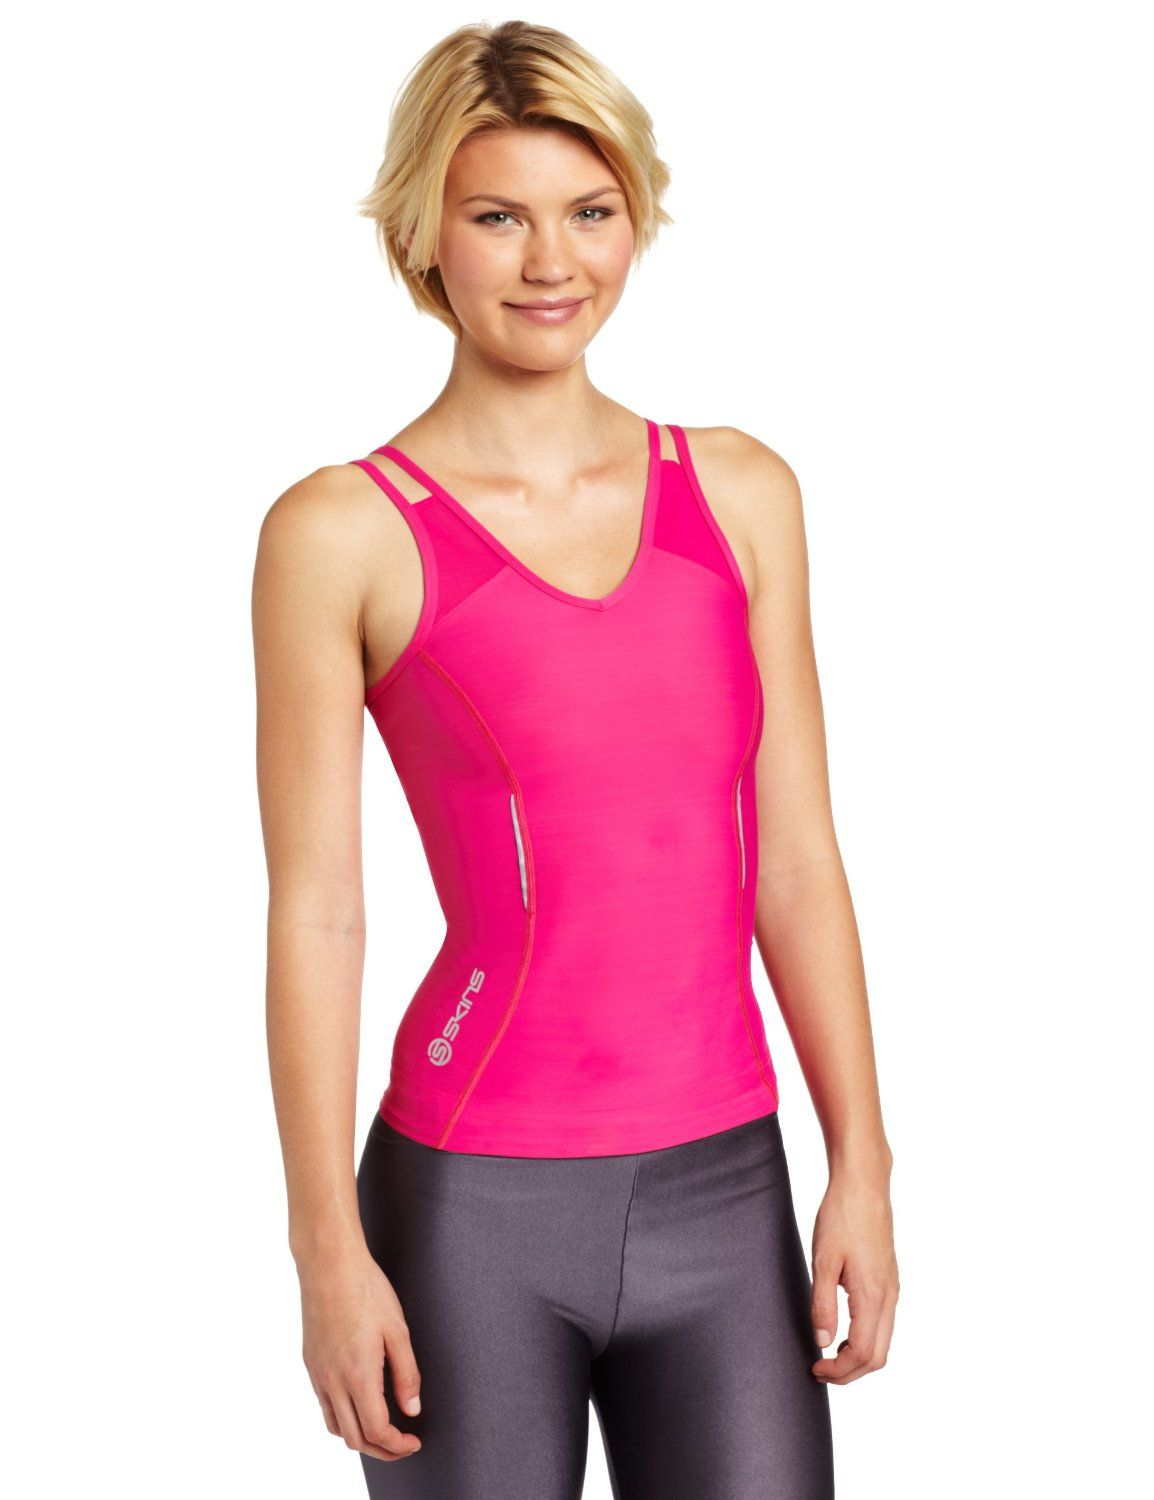 Amazon.com: Skins A200 Women's Compression Tank Top: Sports & Outdoors